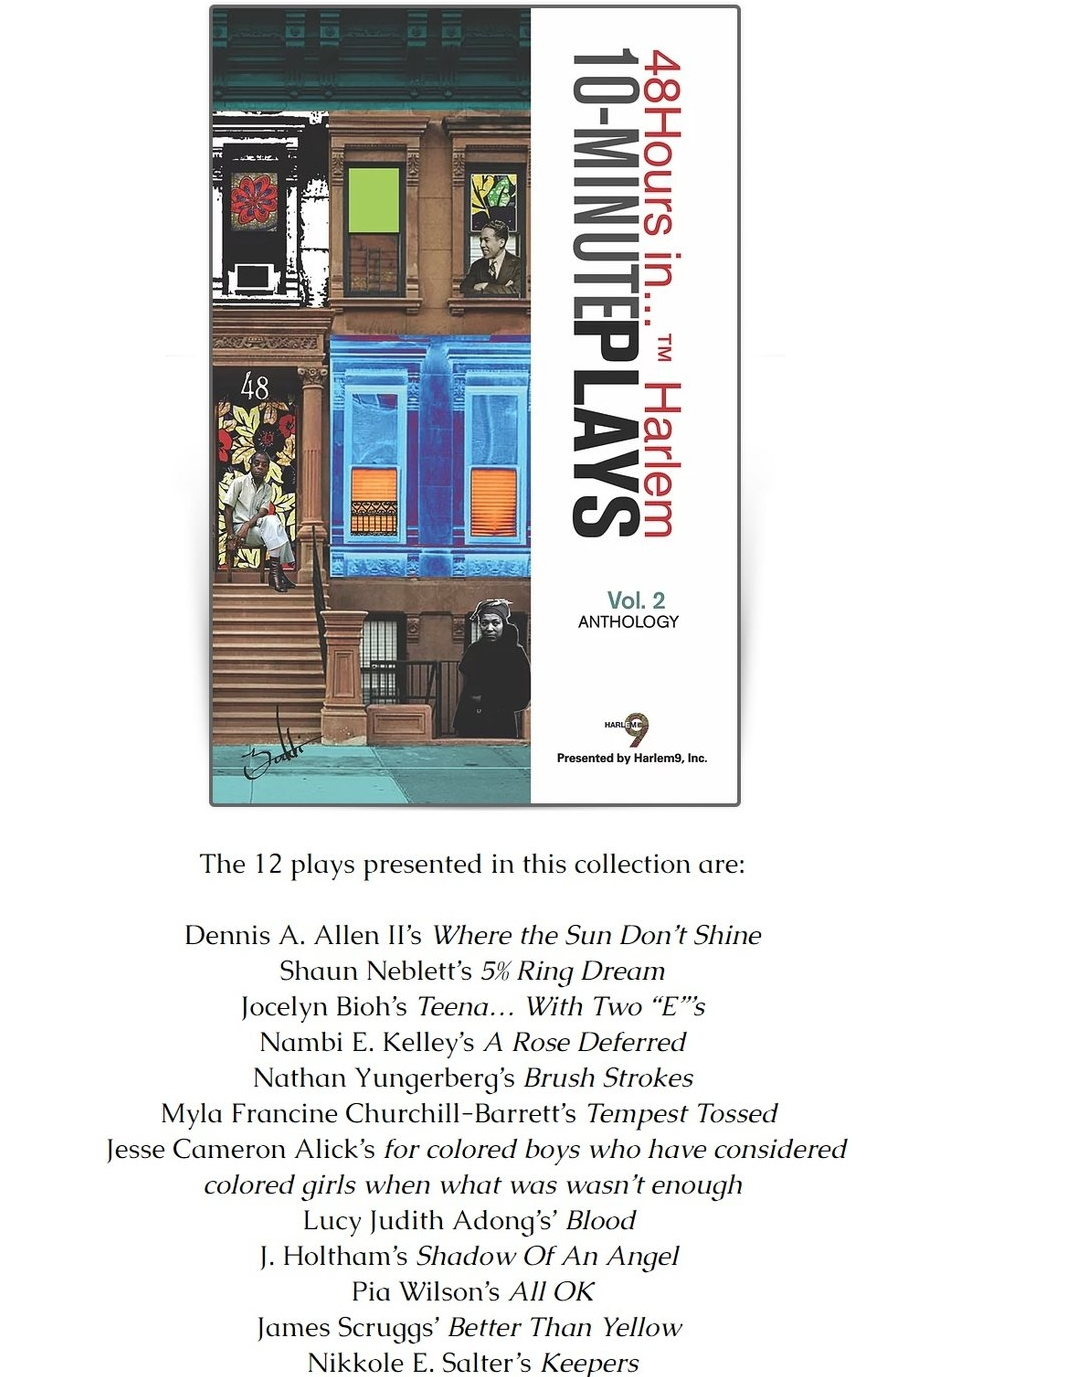 AMAZON - My ten minute play Brush Strokes has been published in a groundbreaking anthology of inspired ten-minute plays by 12 new and emerging black playwrights, presented by the OBIE Award Winning Harlem9, Inc., presenters of the annual